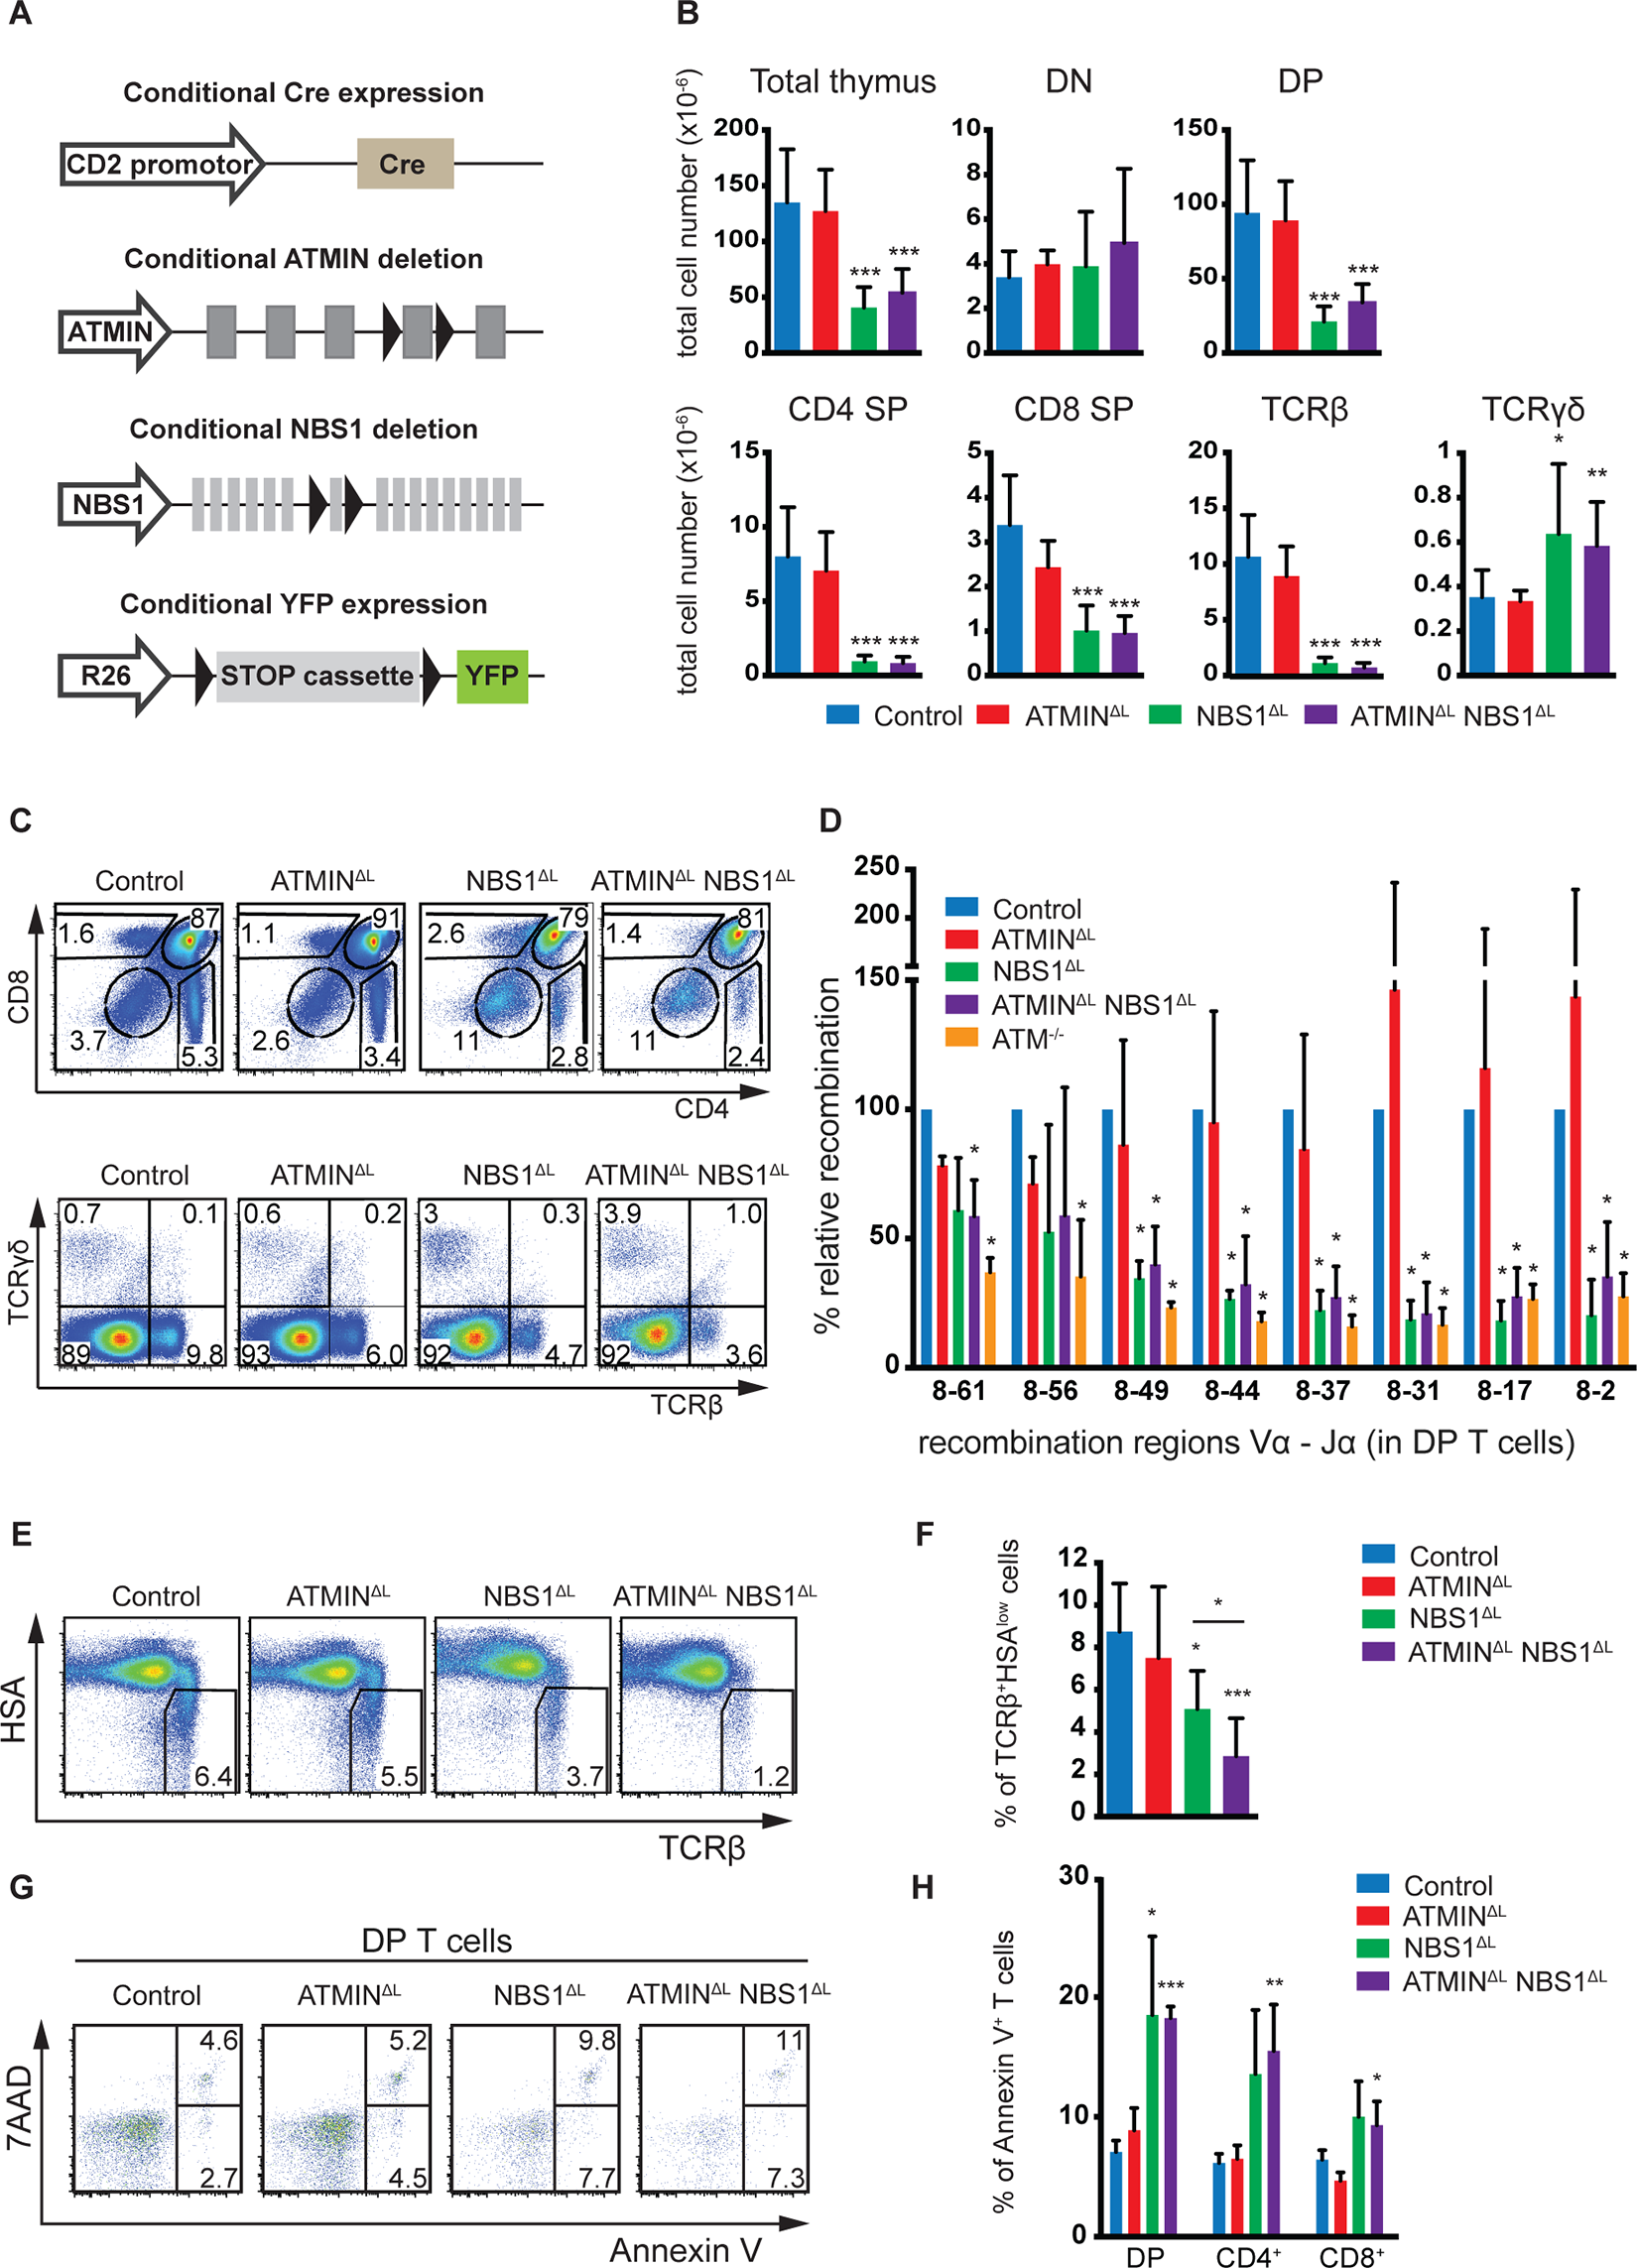 NBS1 is required for T cell development and TCRα recombination, which is largely unaffected by concomitant loss of ATMIN.